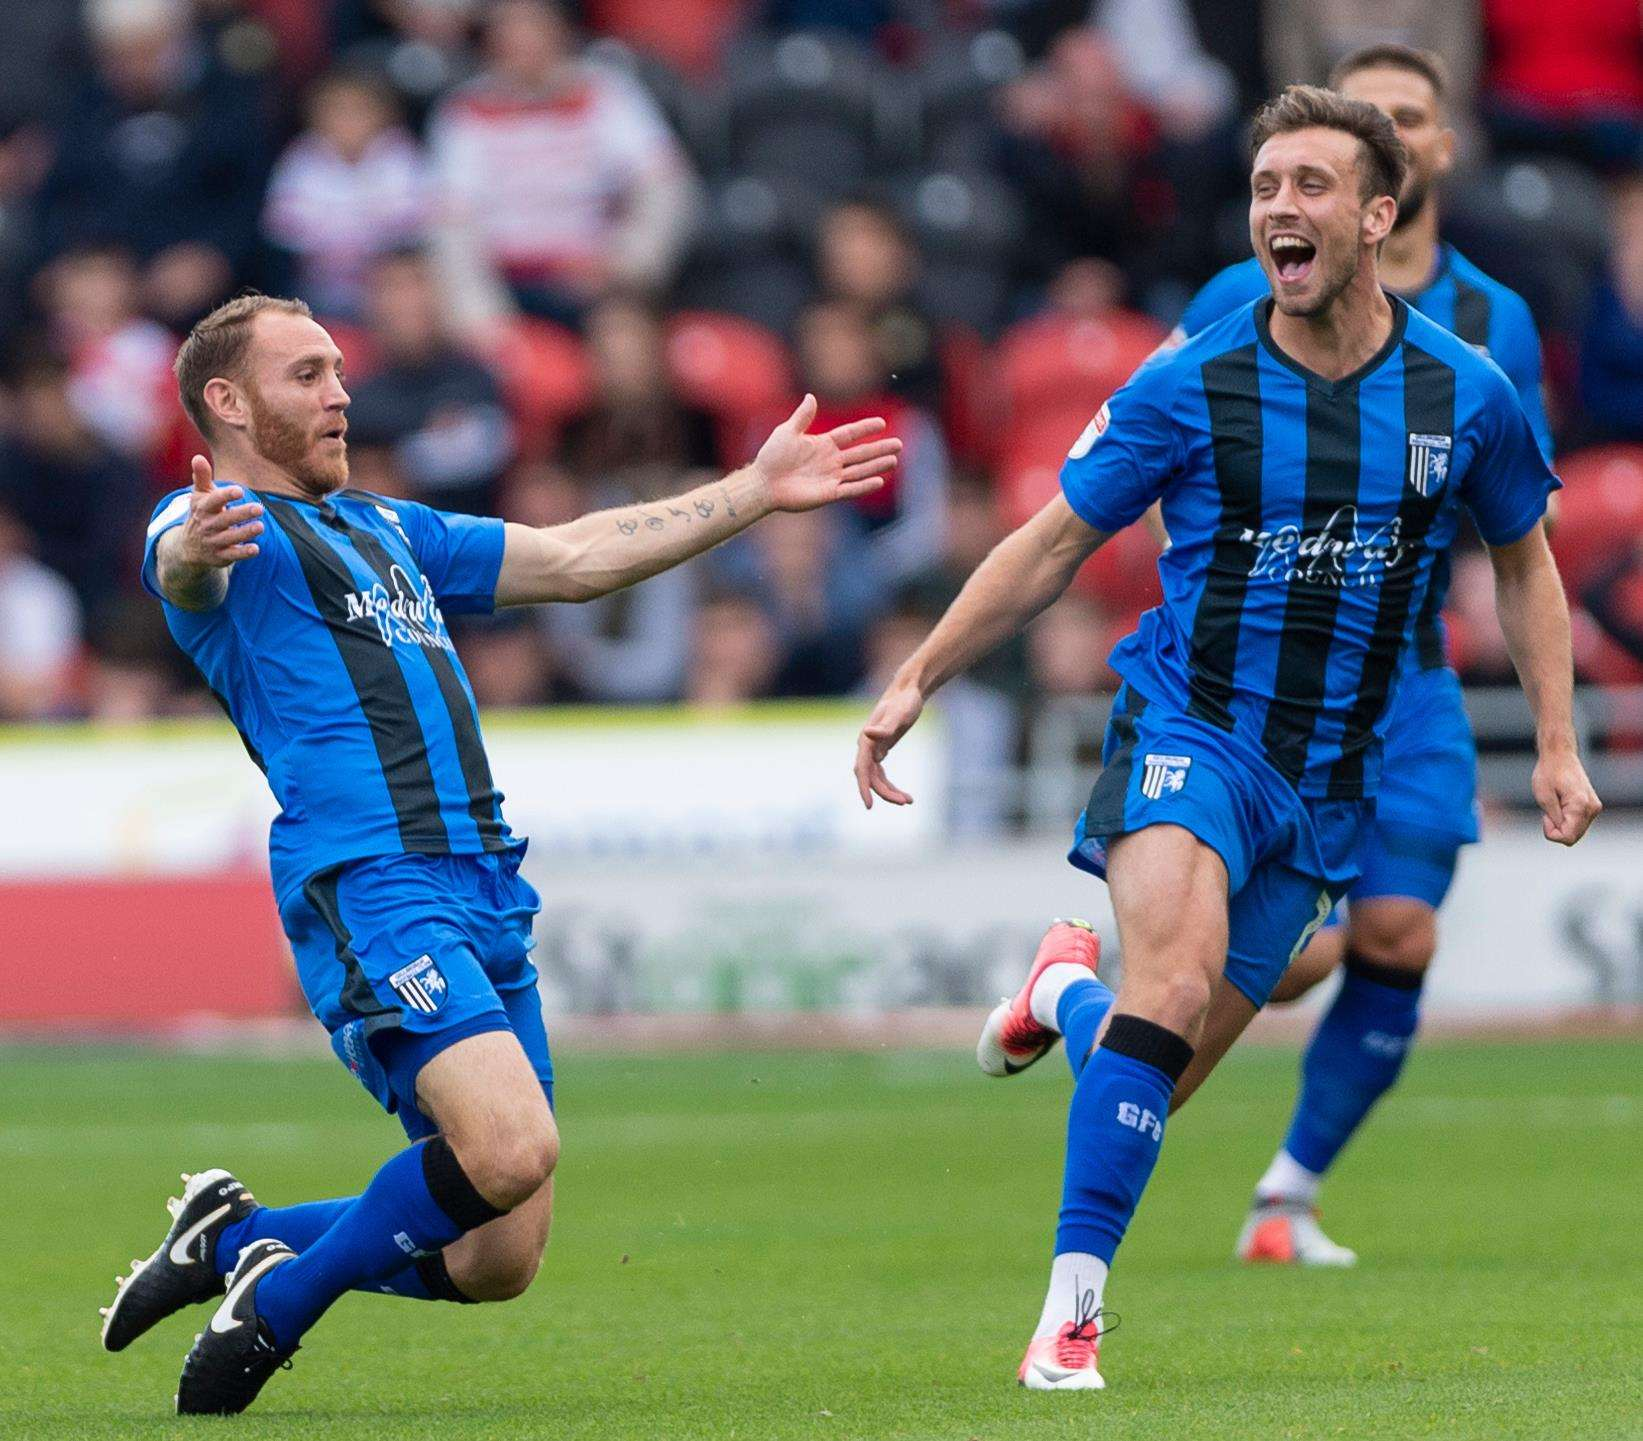 Gillingham's Barry Fuller celebrates scoring the opening goal at Doncaster. Picture: Ady Kerry